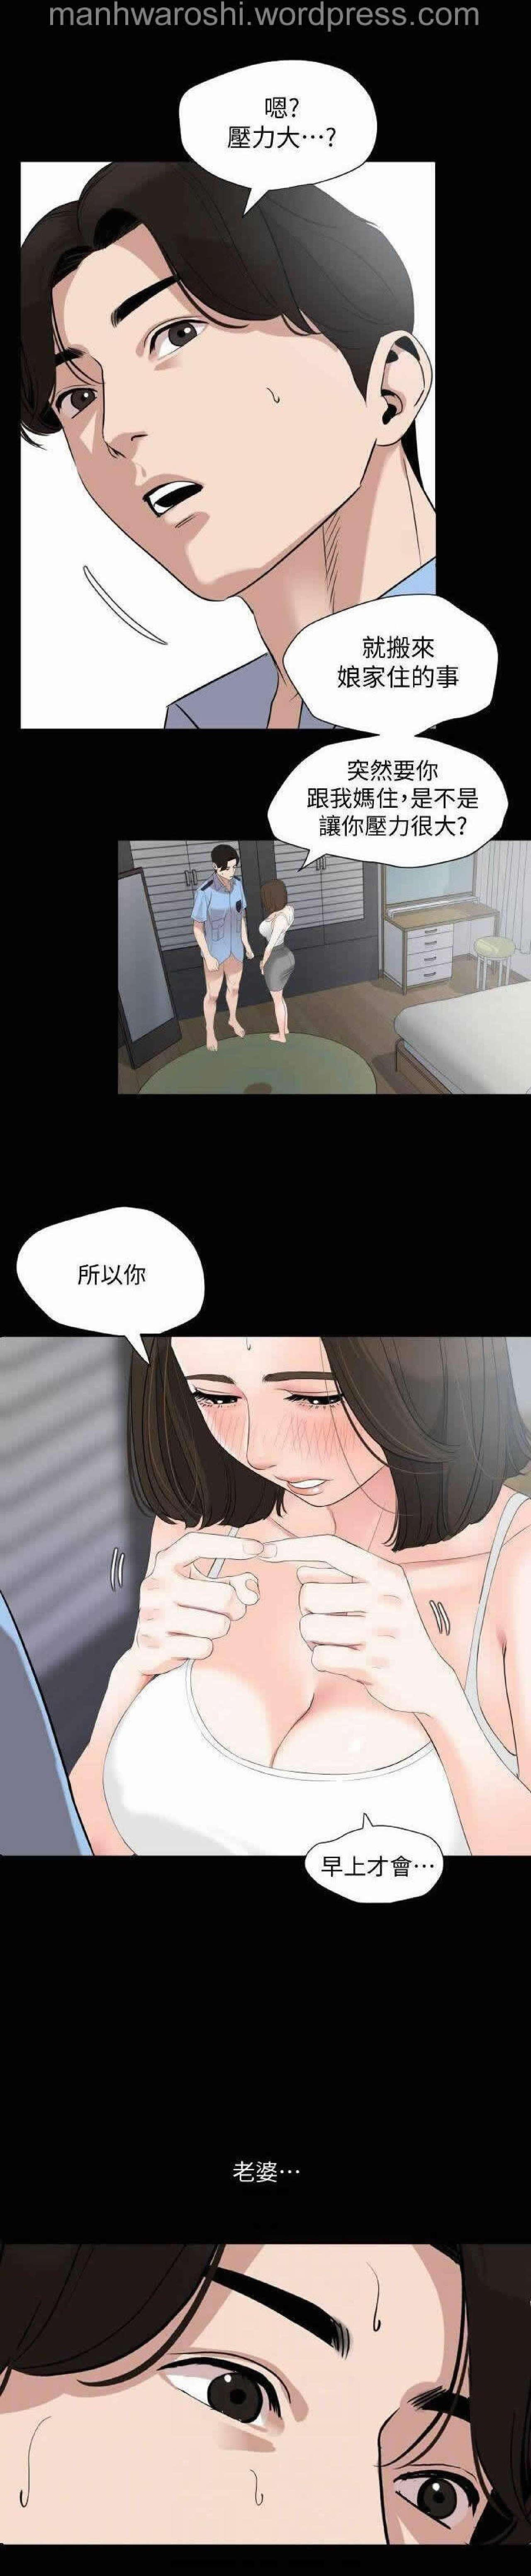 Don't Be Like This! Son-In-Law | 与岳母同屋 第 7 [Chinese] Manhwa 8